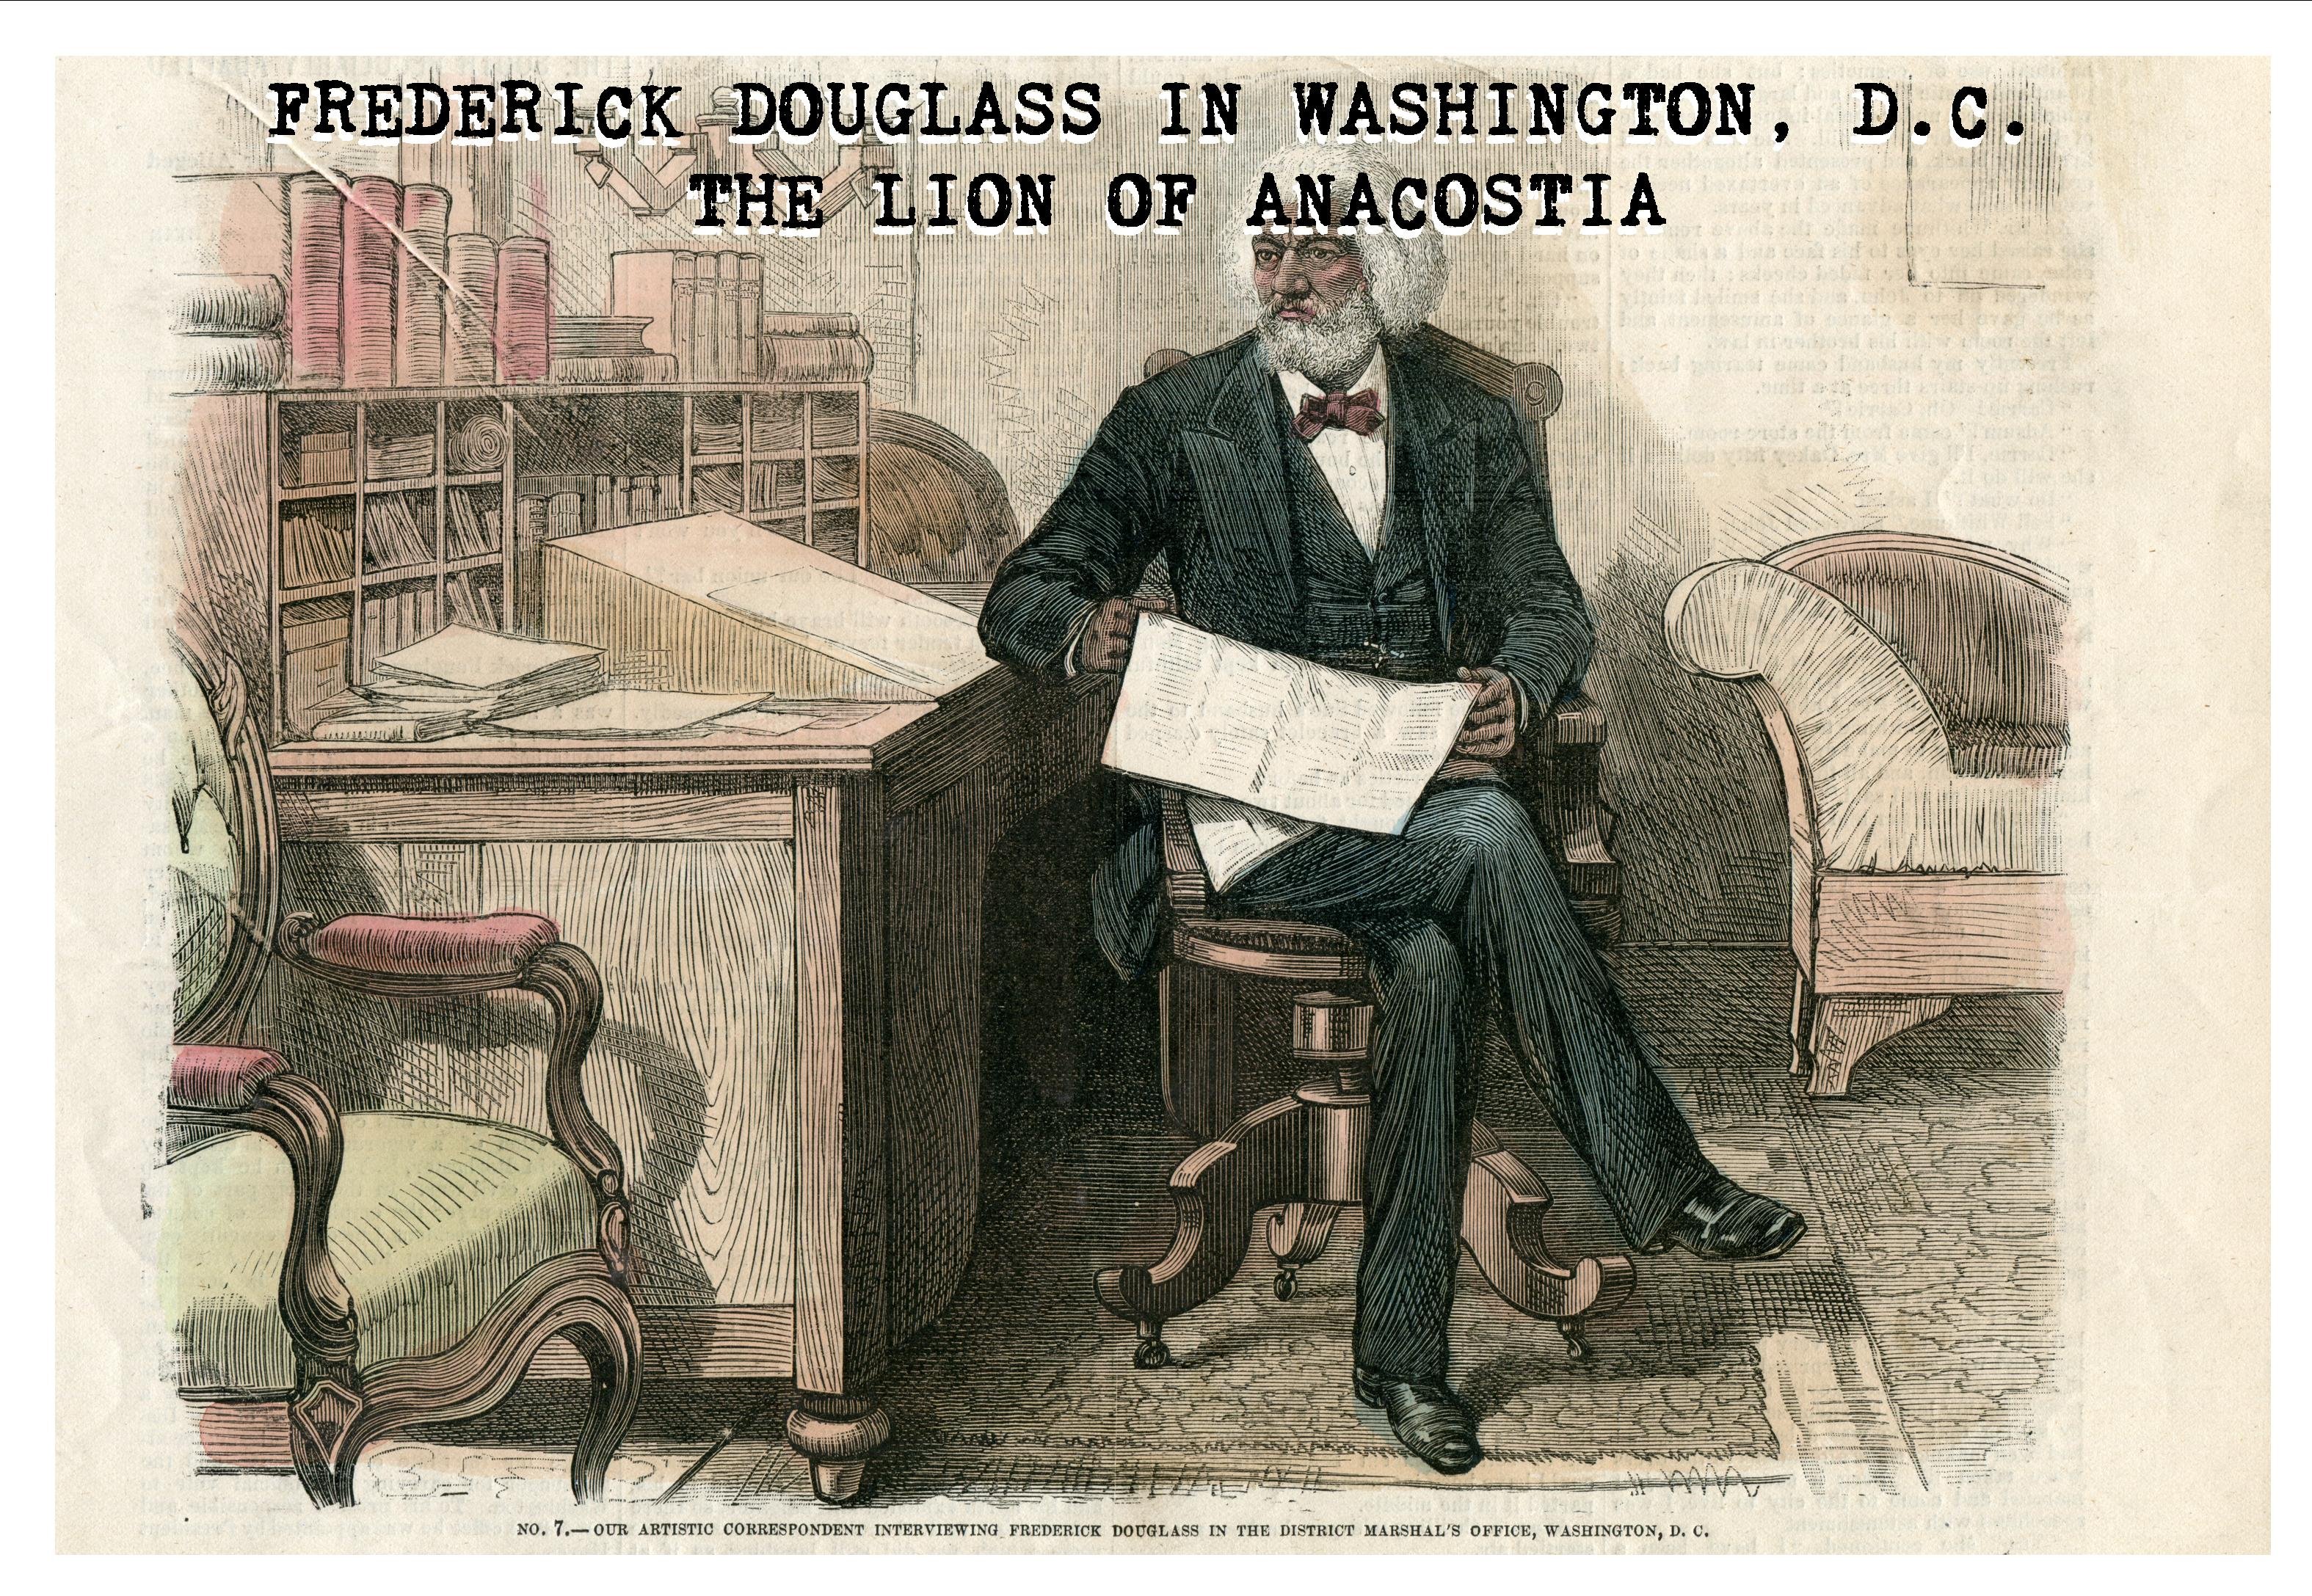 research paper on frederick douglass narrative Slavery and the narrative of frederick douglass essay - slavery and the narrative of frederick douglass in 1845, frederick douglass told his compelling story of life as slave and as a free man through the words of somebody who endured slavery, we can only get a taste of what it was like, for we will never truly know the.